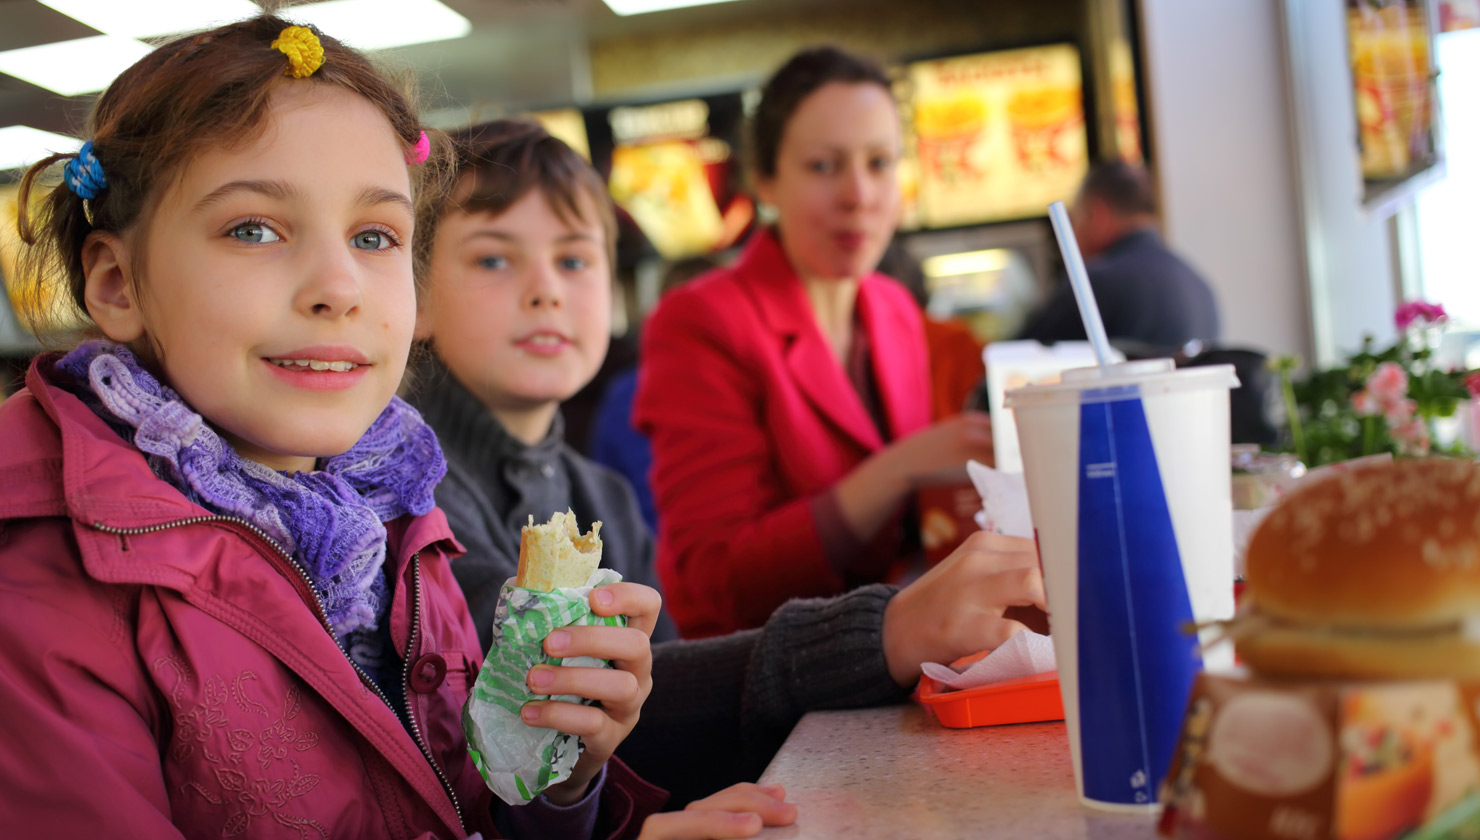 Kids Meals, Toys, and TV Ads Can Lead to More Frequent Fast Food Visits